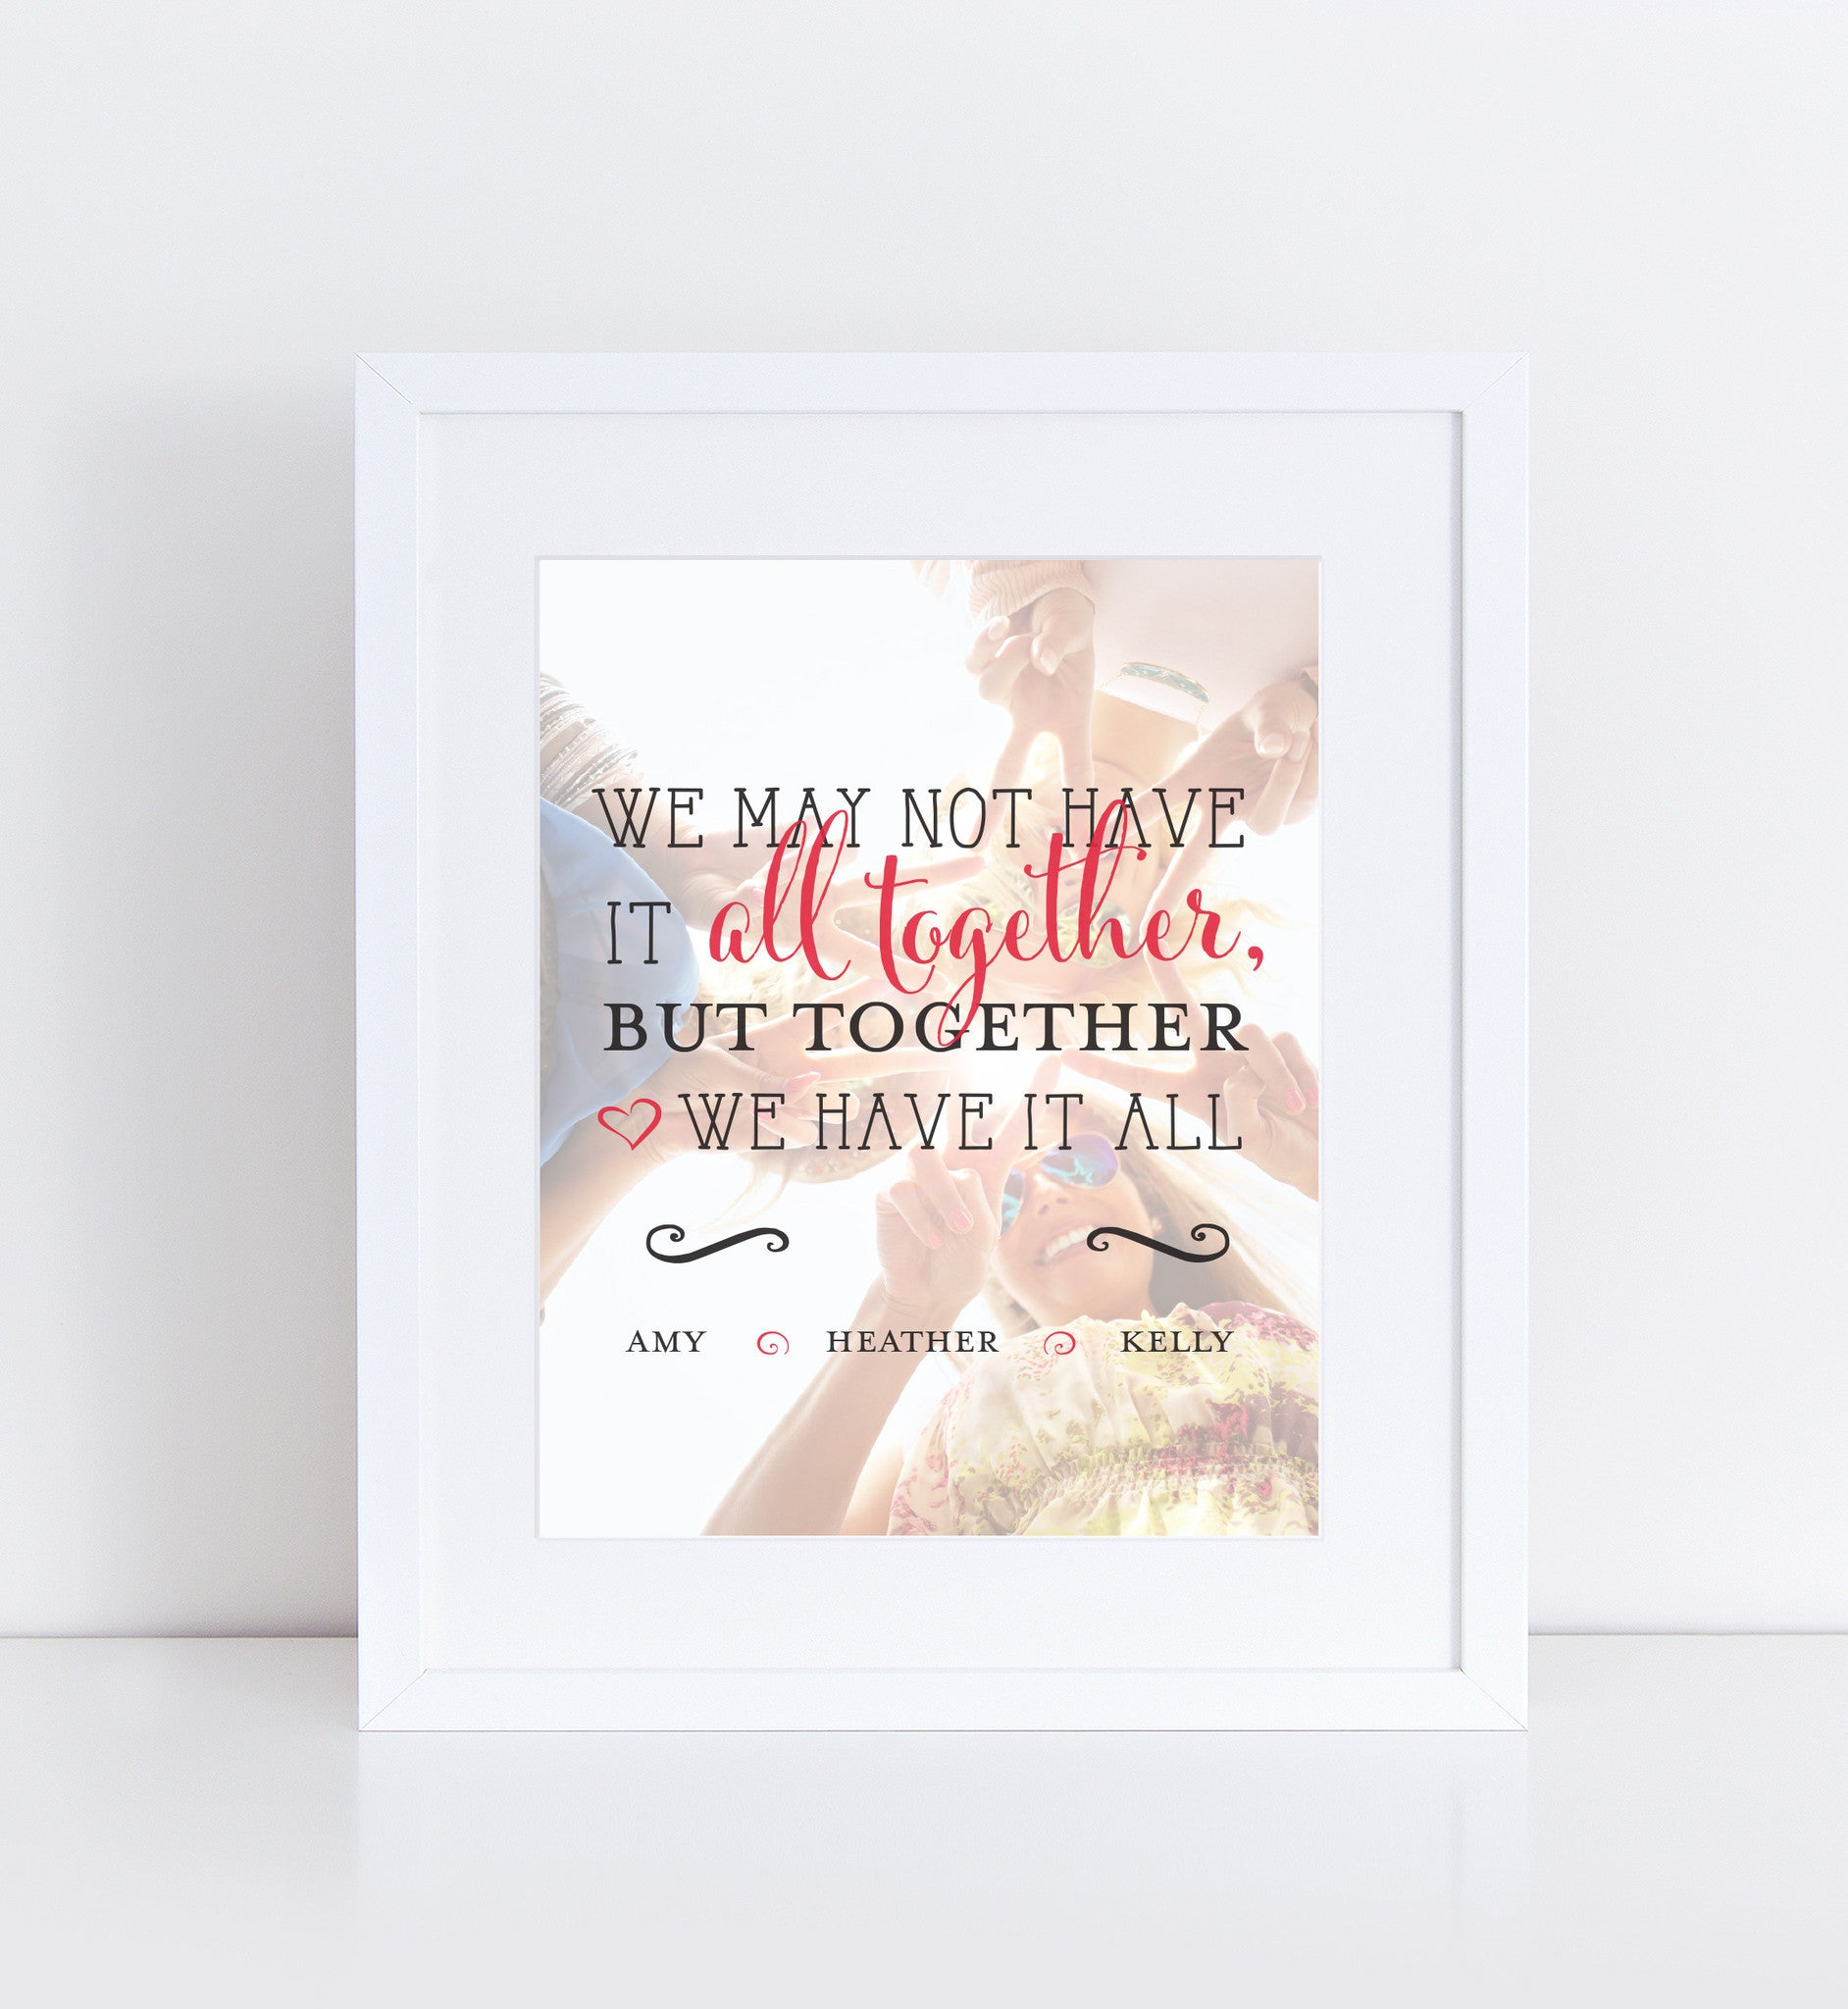 Together We Have It All Personalized Photo Quote